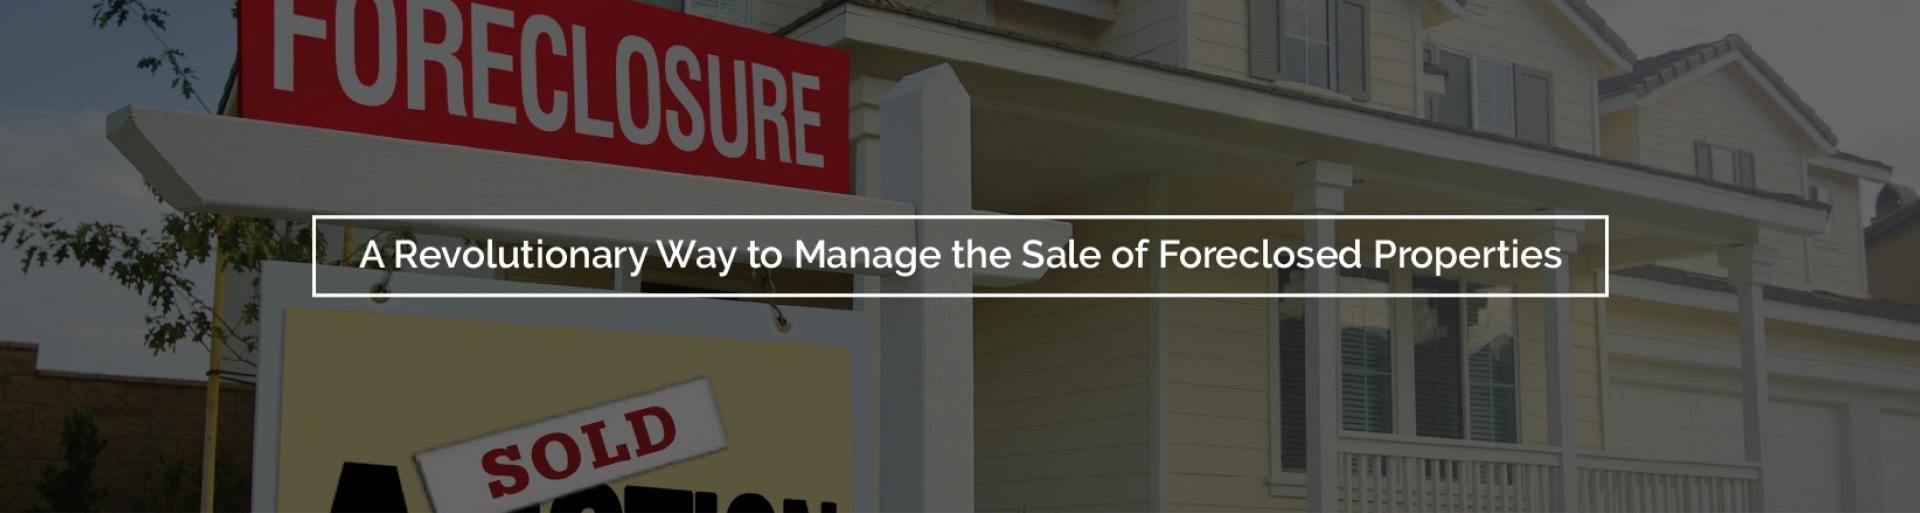 A Revolutionary Way to Manage the Sale of Foreclosed Properties